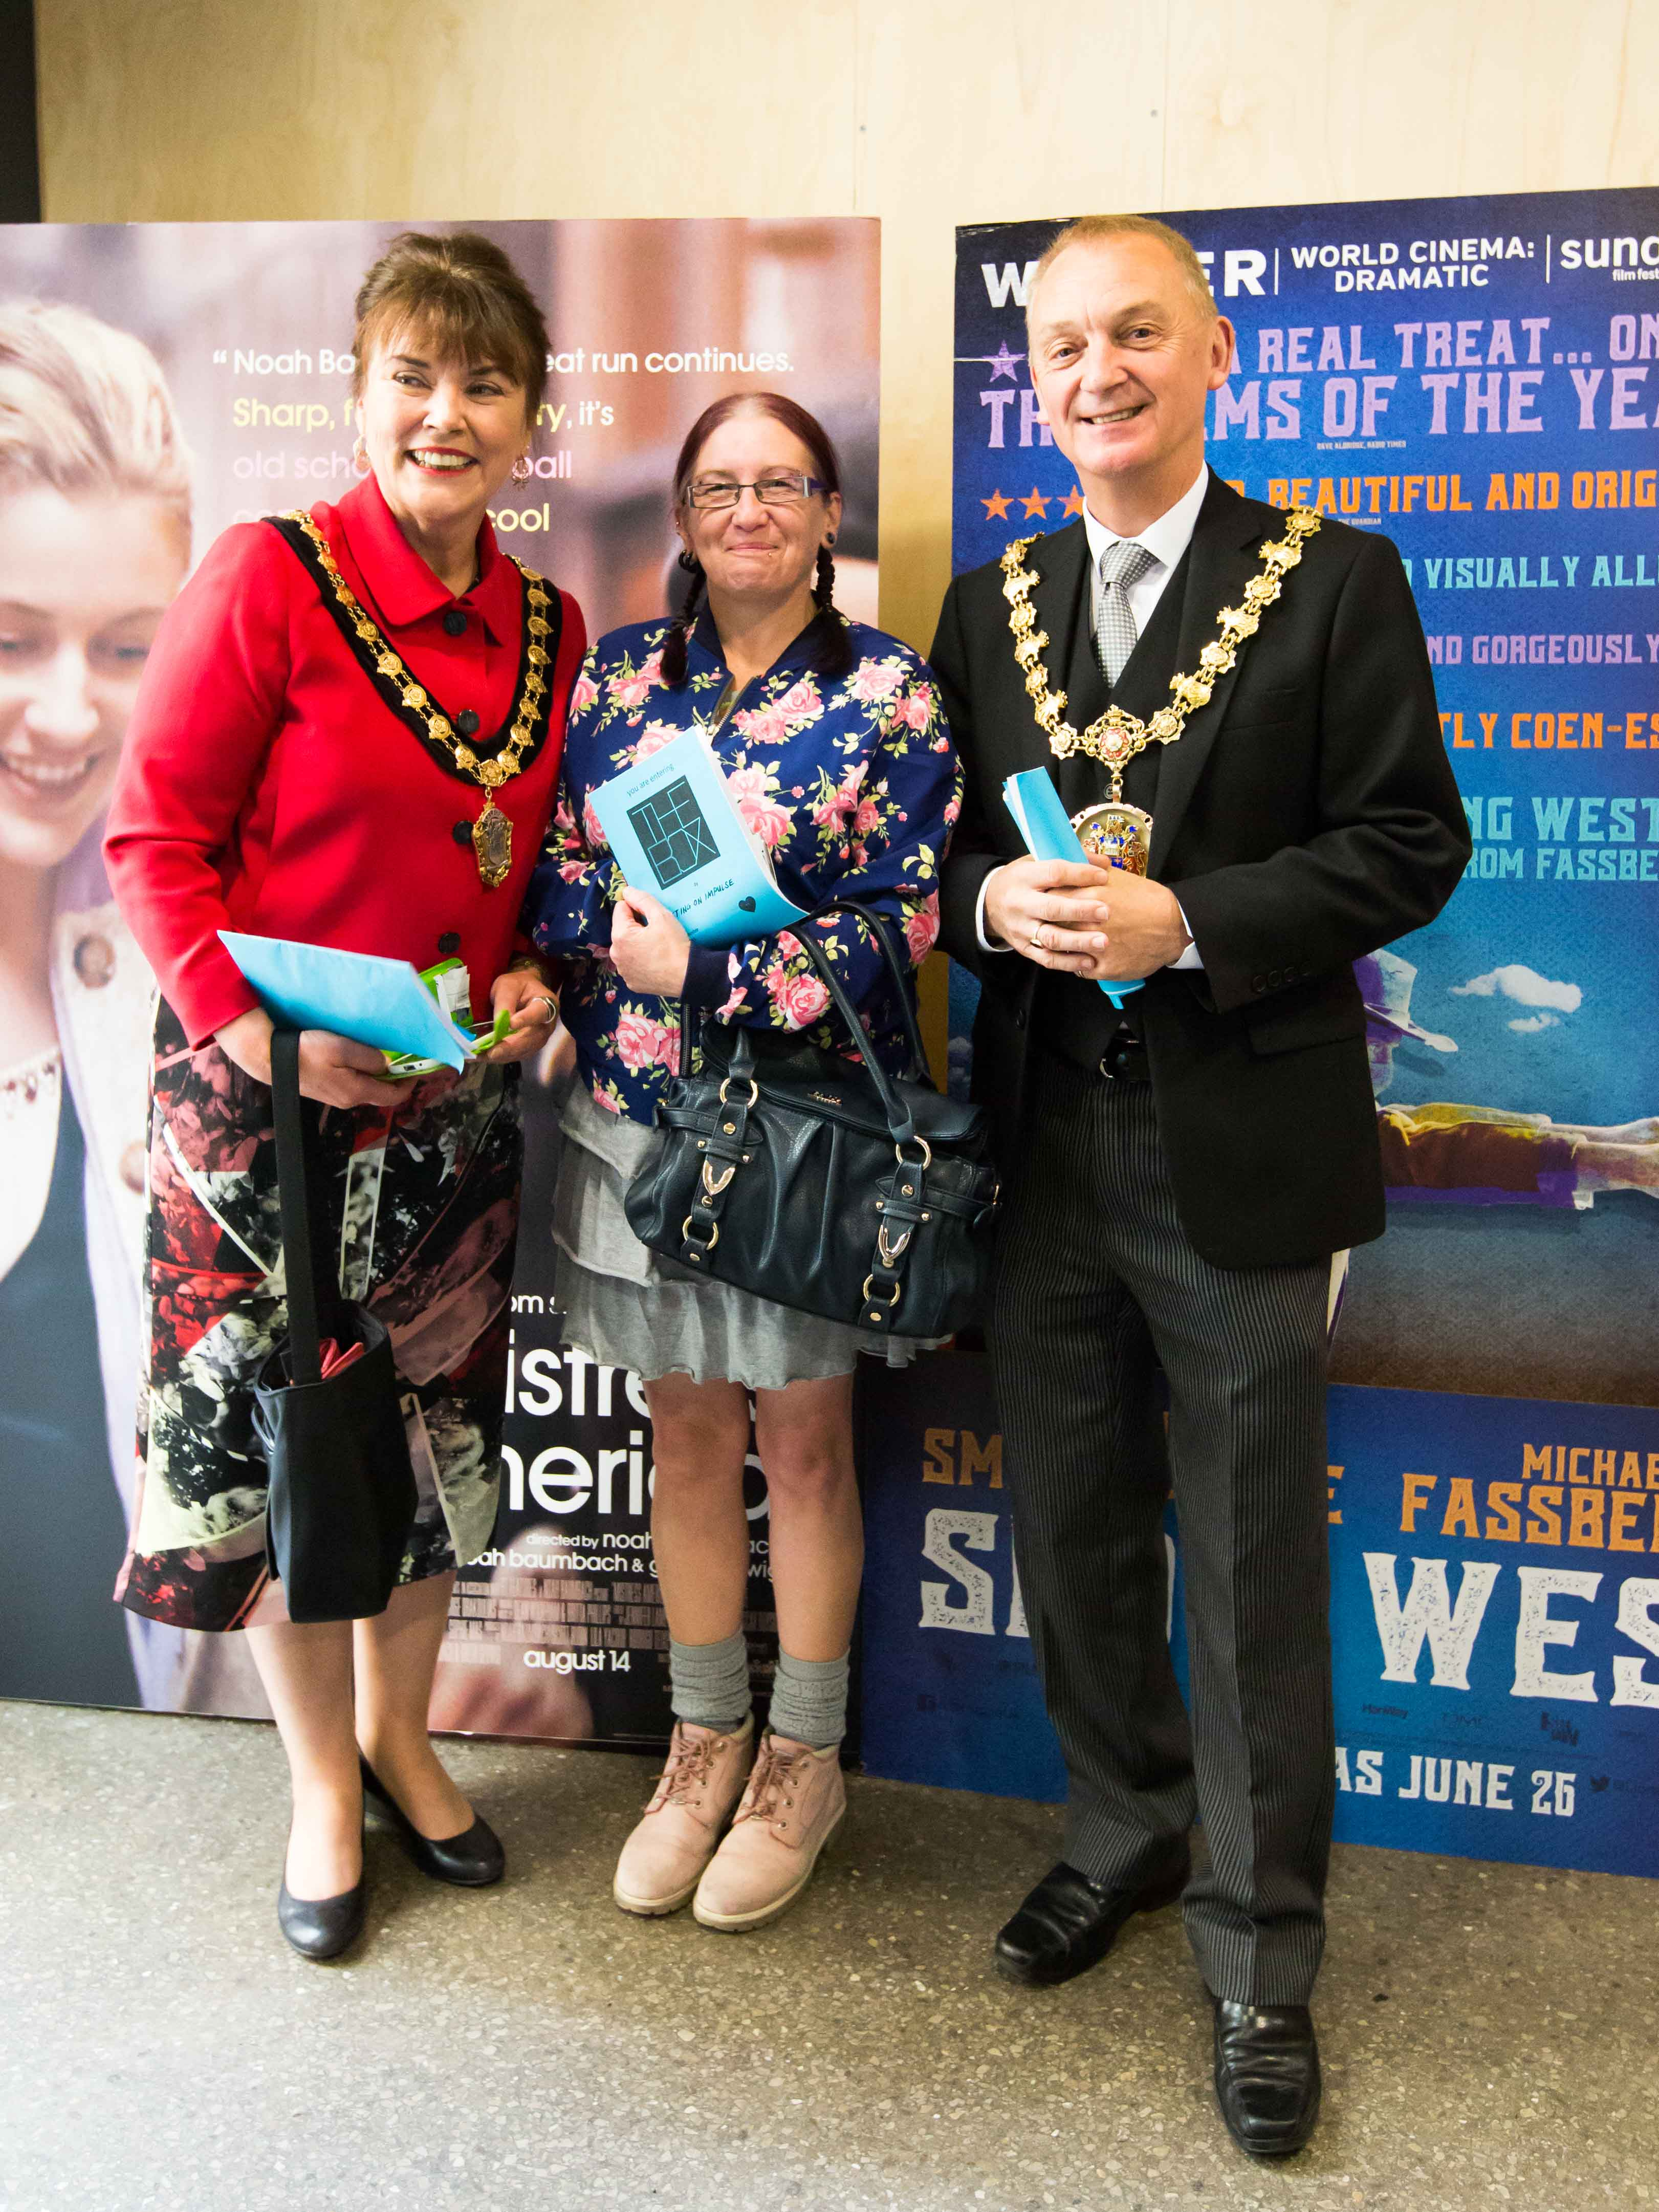 Mayor and Mayoress of Salford with actor Vicky Wilson, photo by Mike Browne